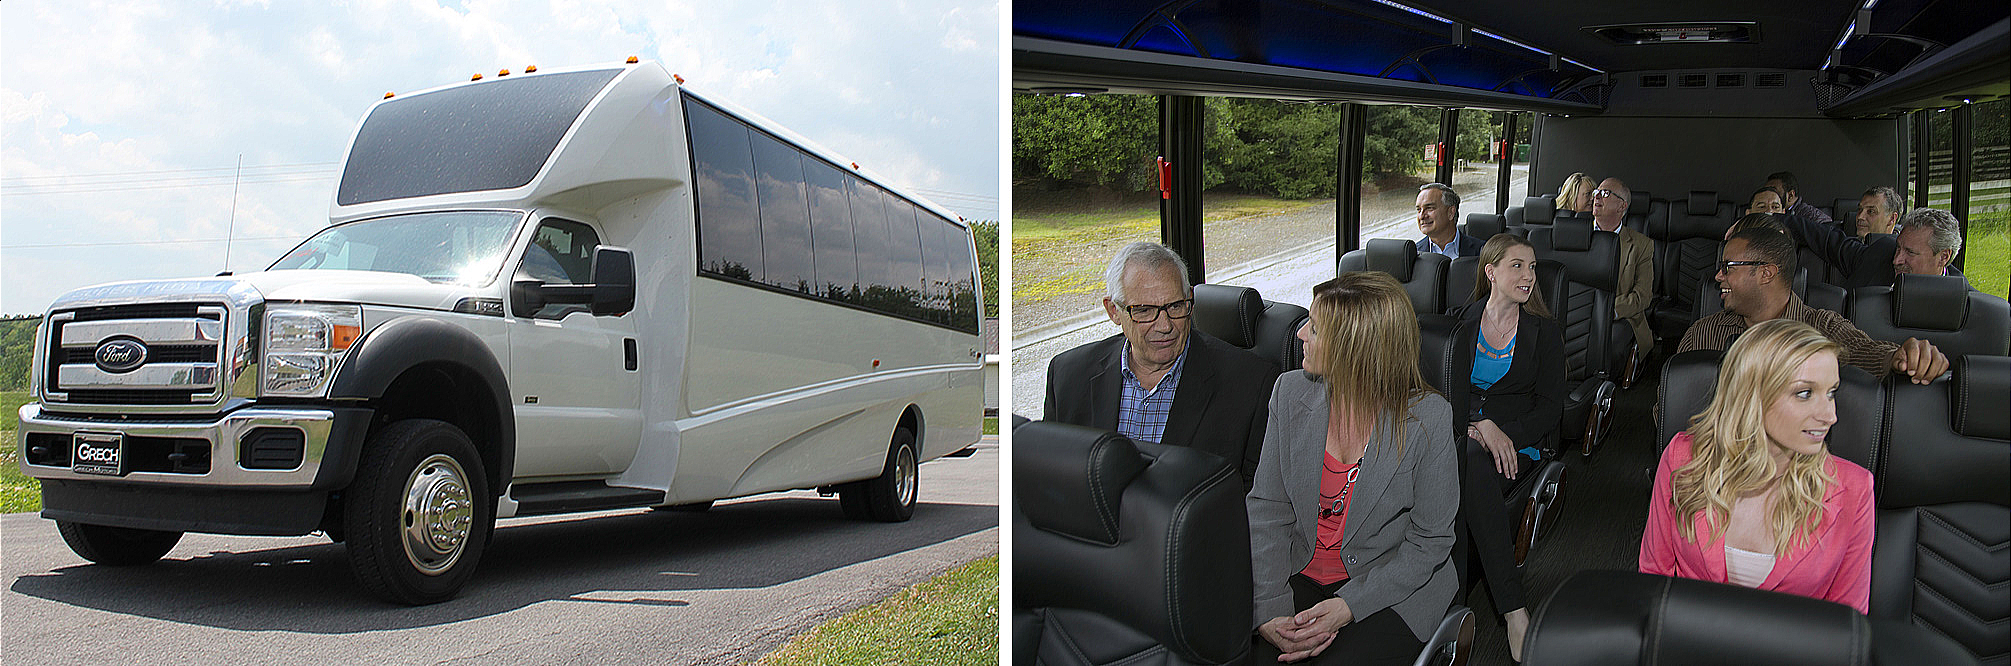 Best Twin Cities Minneapolis Executive Luxury Shuttle Bus Services - Private Group Transportation Services Photos - Minneapolis St Paul - Twin Cities Area - Aspen Limo and Car Services - Private Shuttle Bus Vehicles Photos